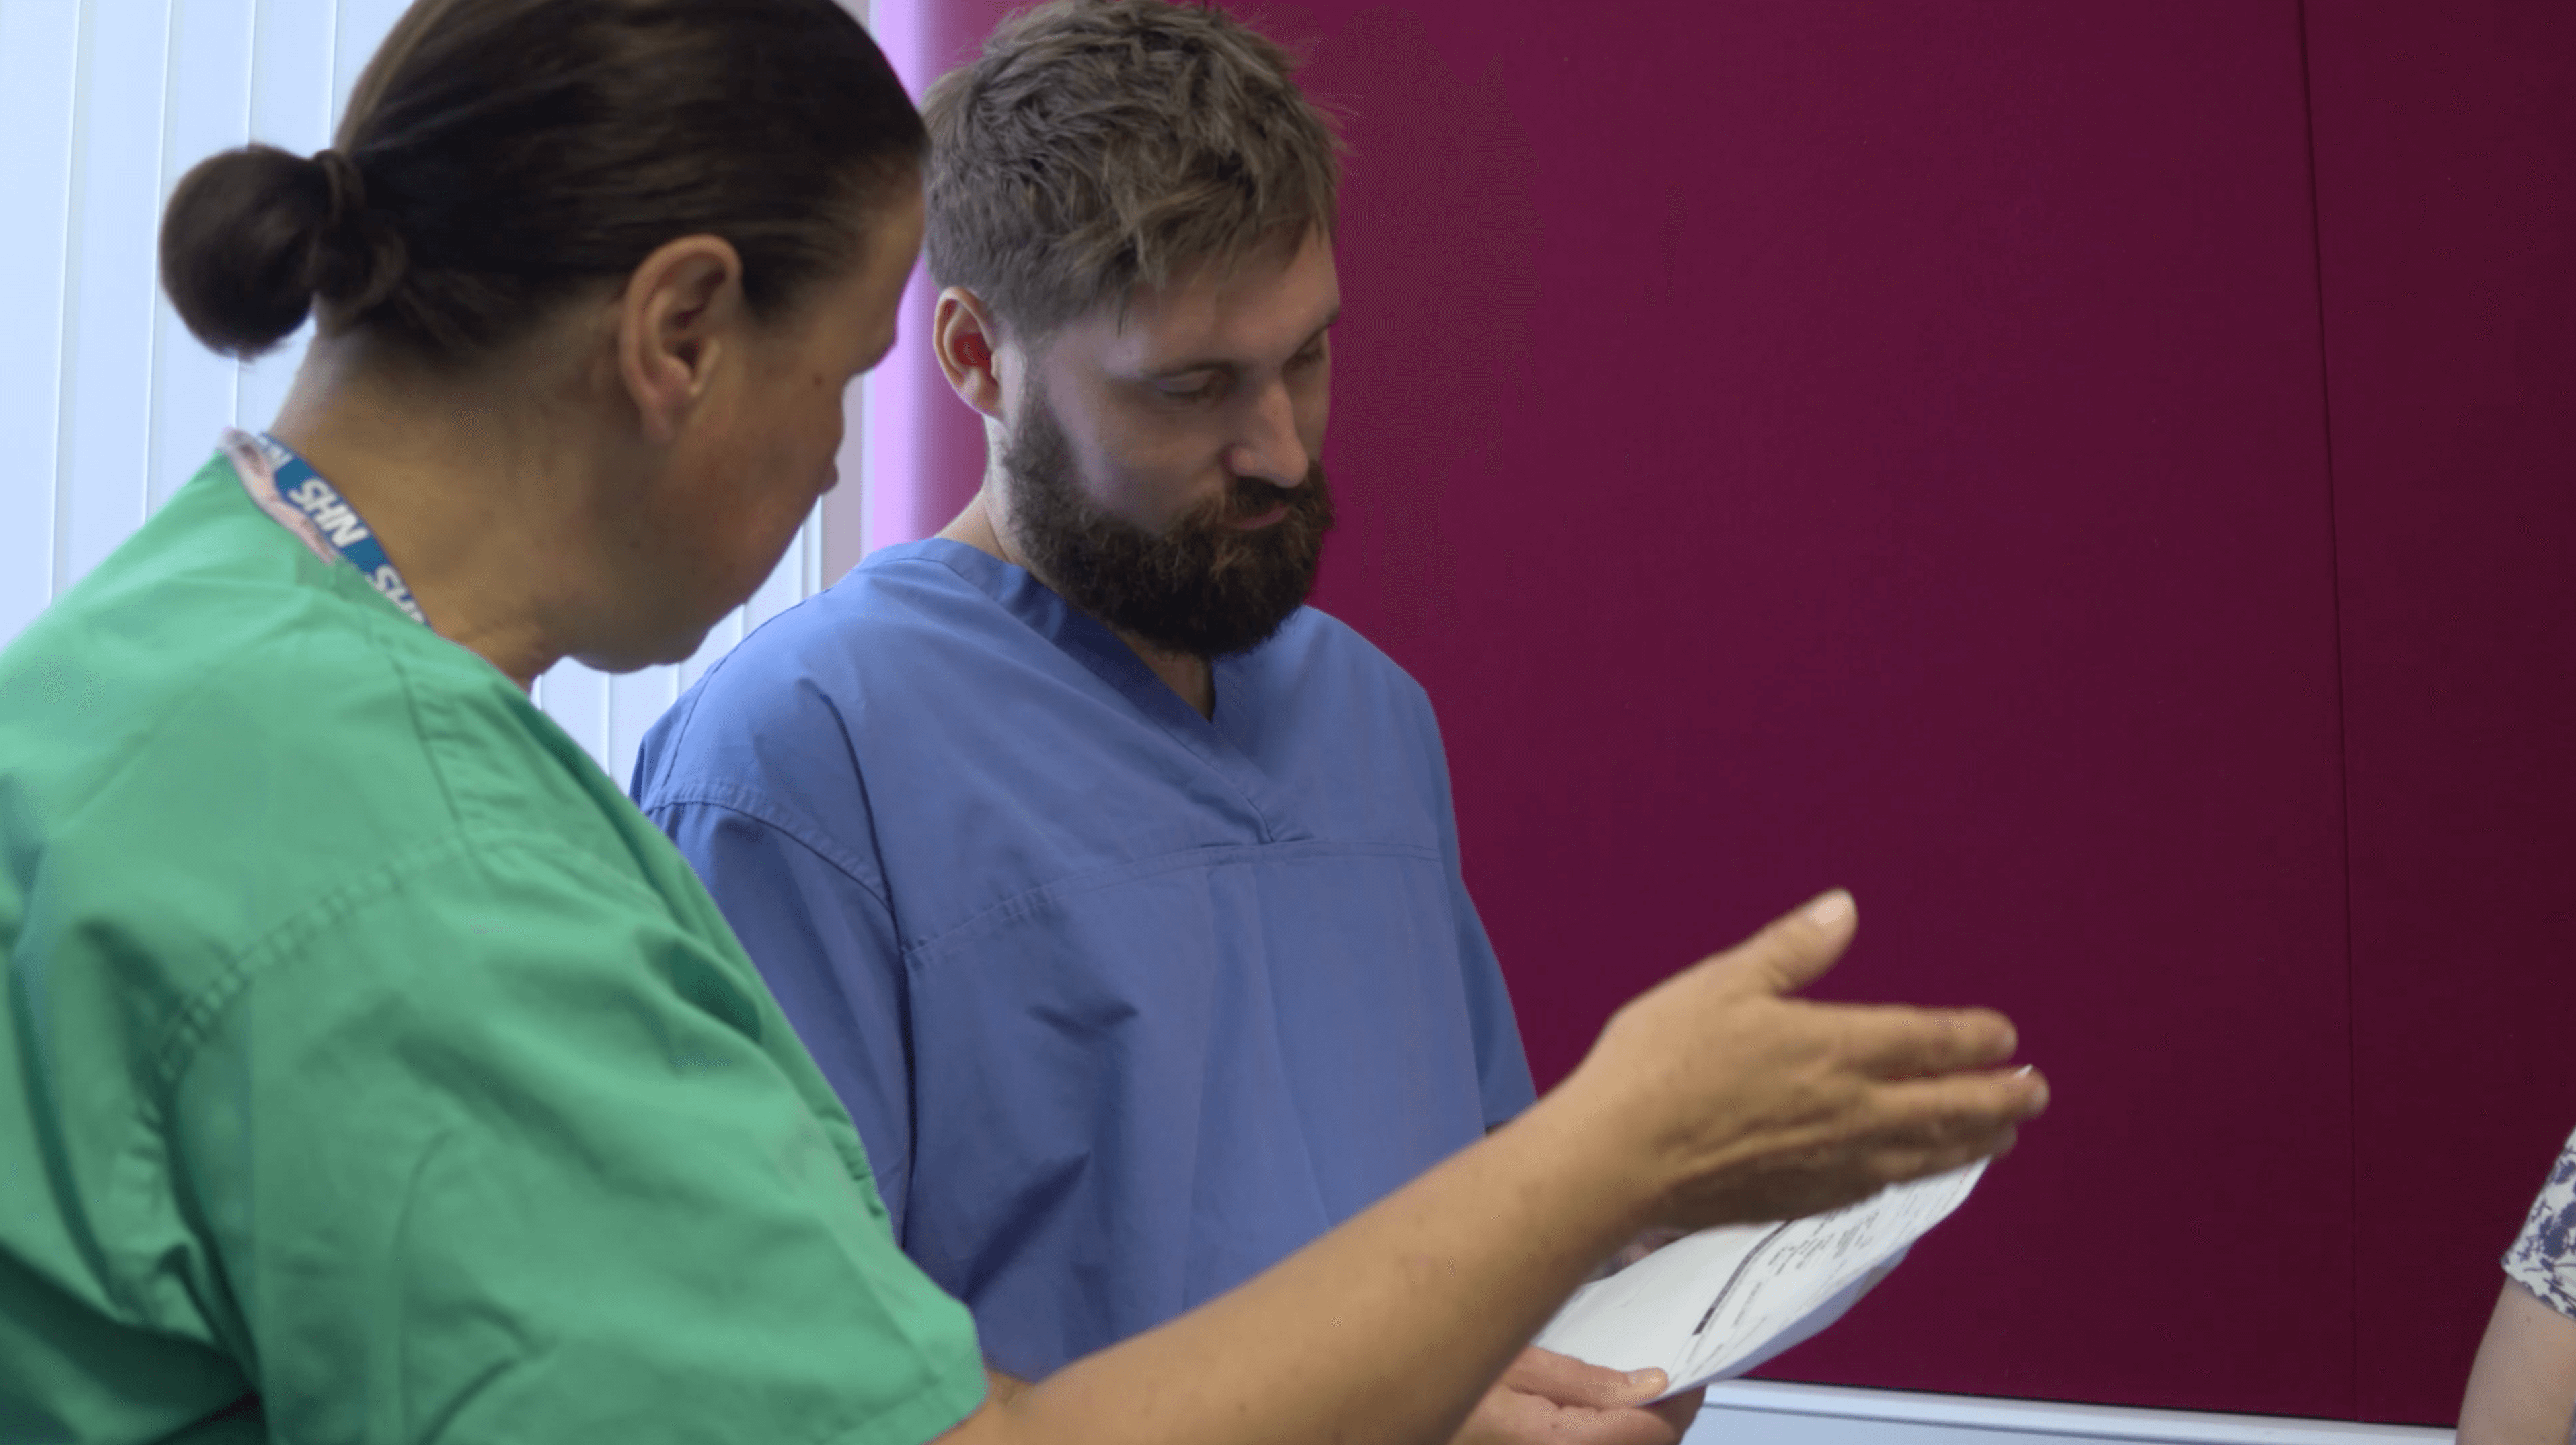 Image from the app showing a user finding a suitable vein to take blood in virtual reality